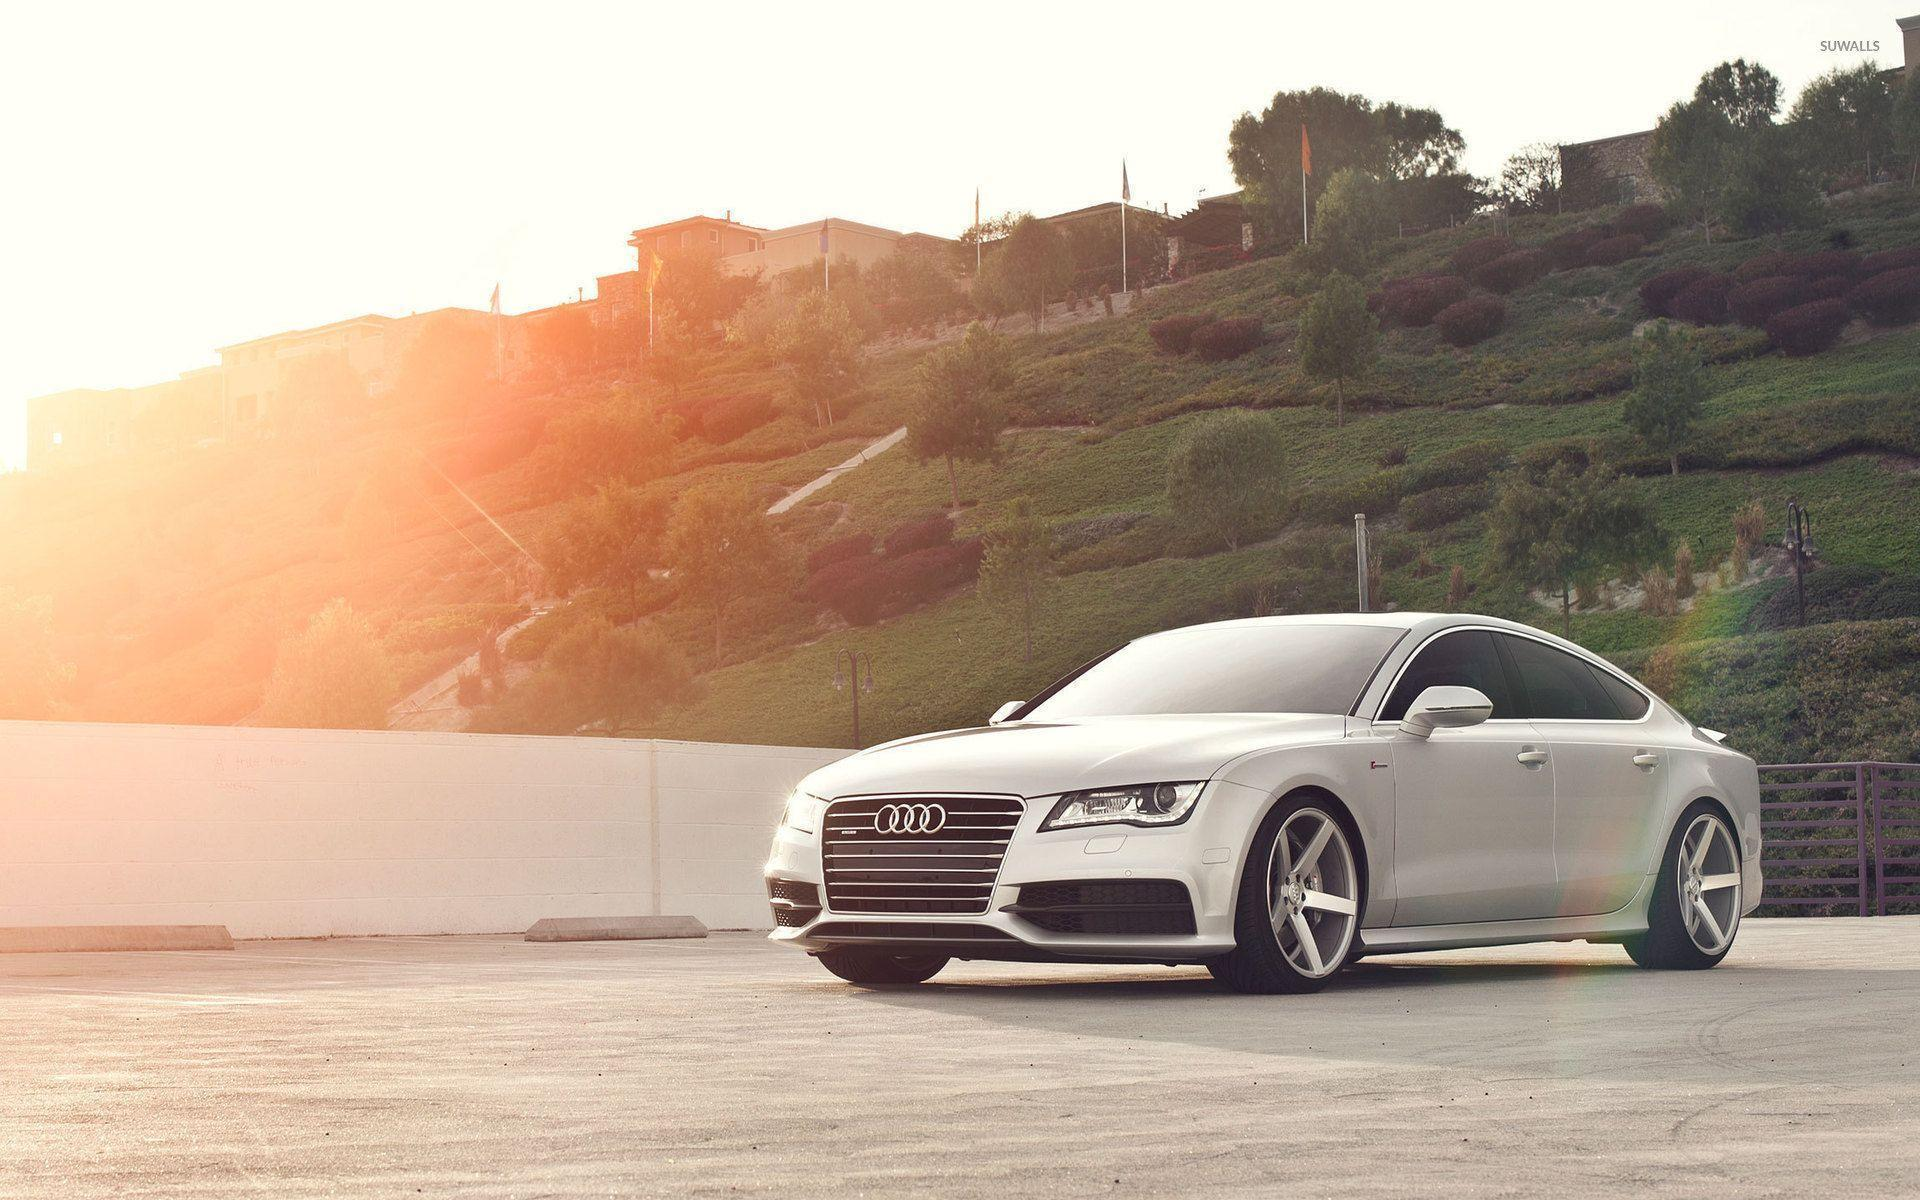 Audi A7 wallpapers